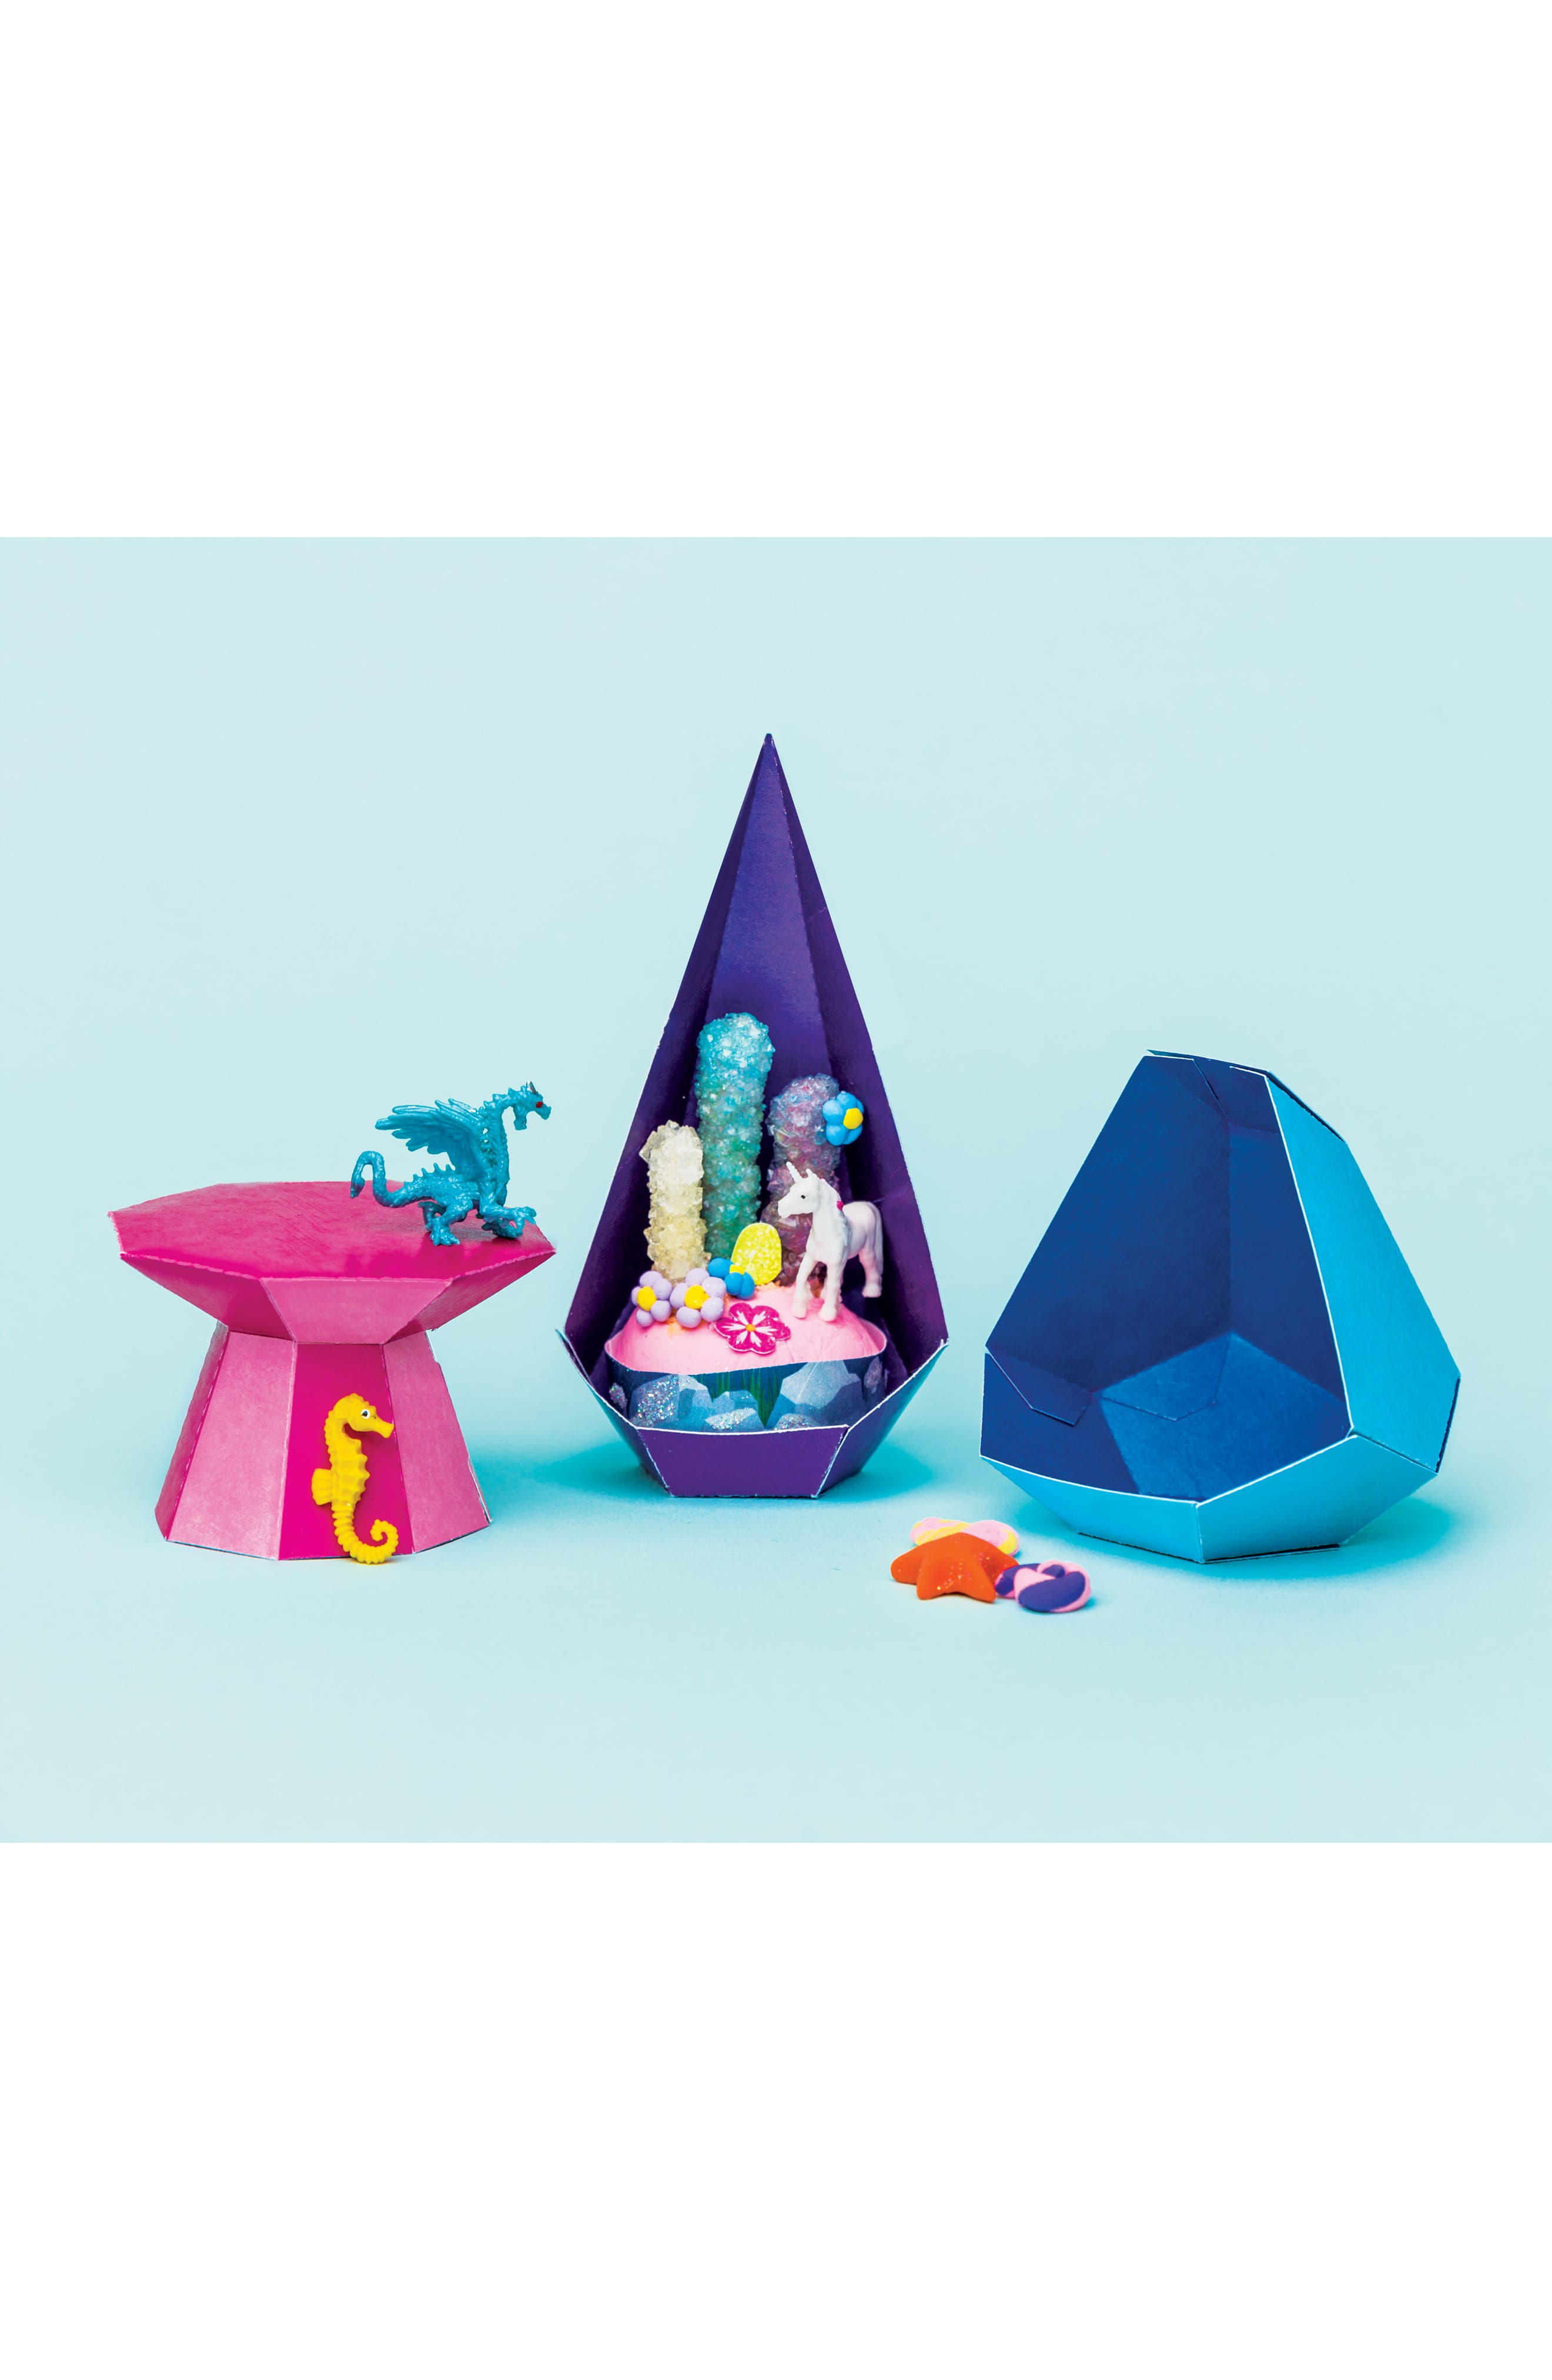 Grow Your Own Crystal Mini Worlds Kit,                             Alternate thumbnail 7, color,                             500